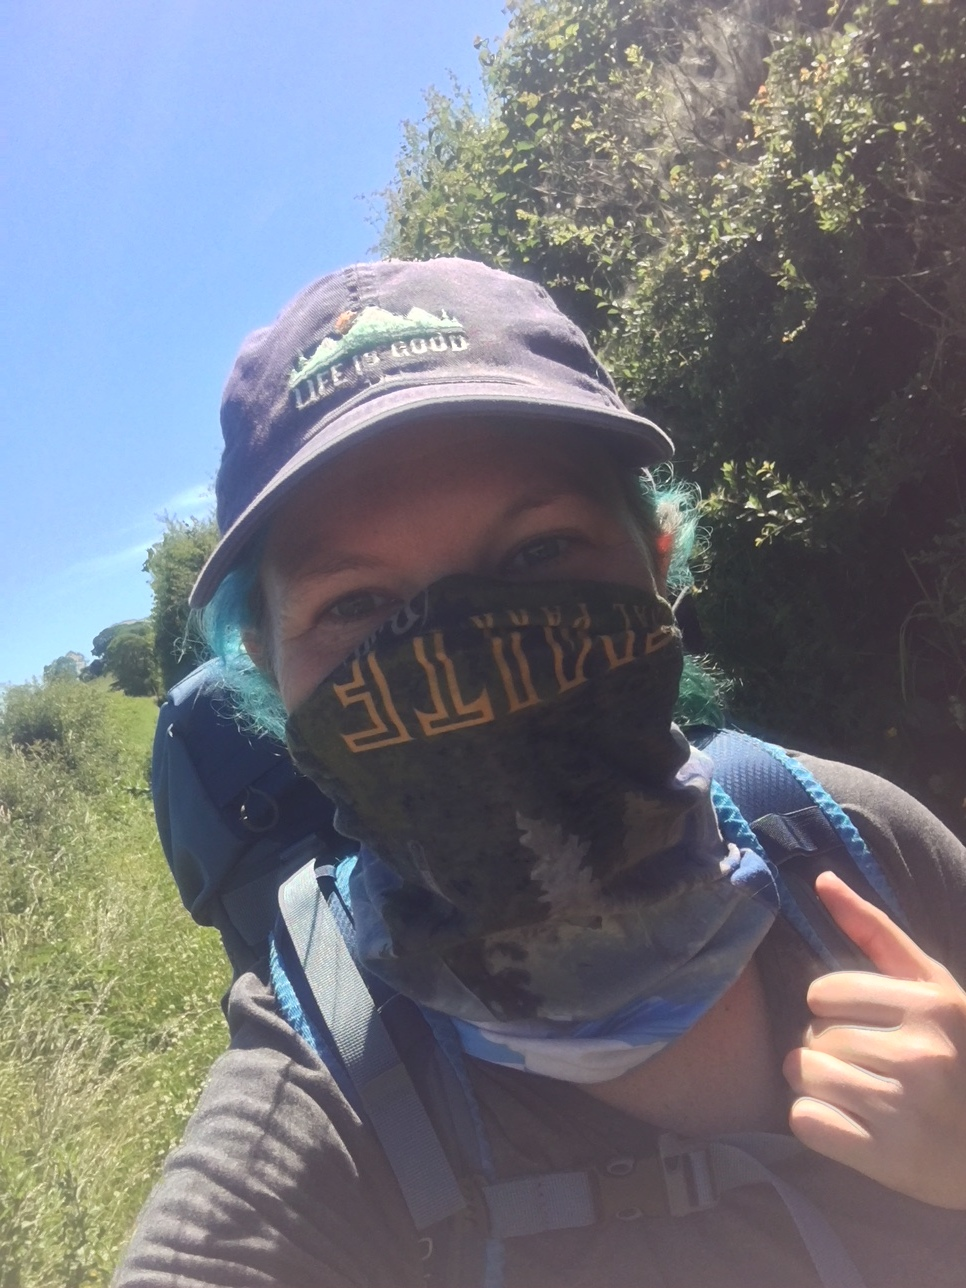 The super useful Buff. You can see that mine is a National Park series. I mostly use it to keep the sun off my neck but I also use it to push my hair back, use as a face cover to protect myself from bugs and dust and about one thousand other things. Get yourself a Buff!